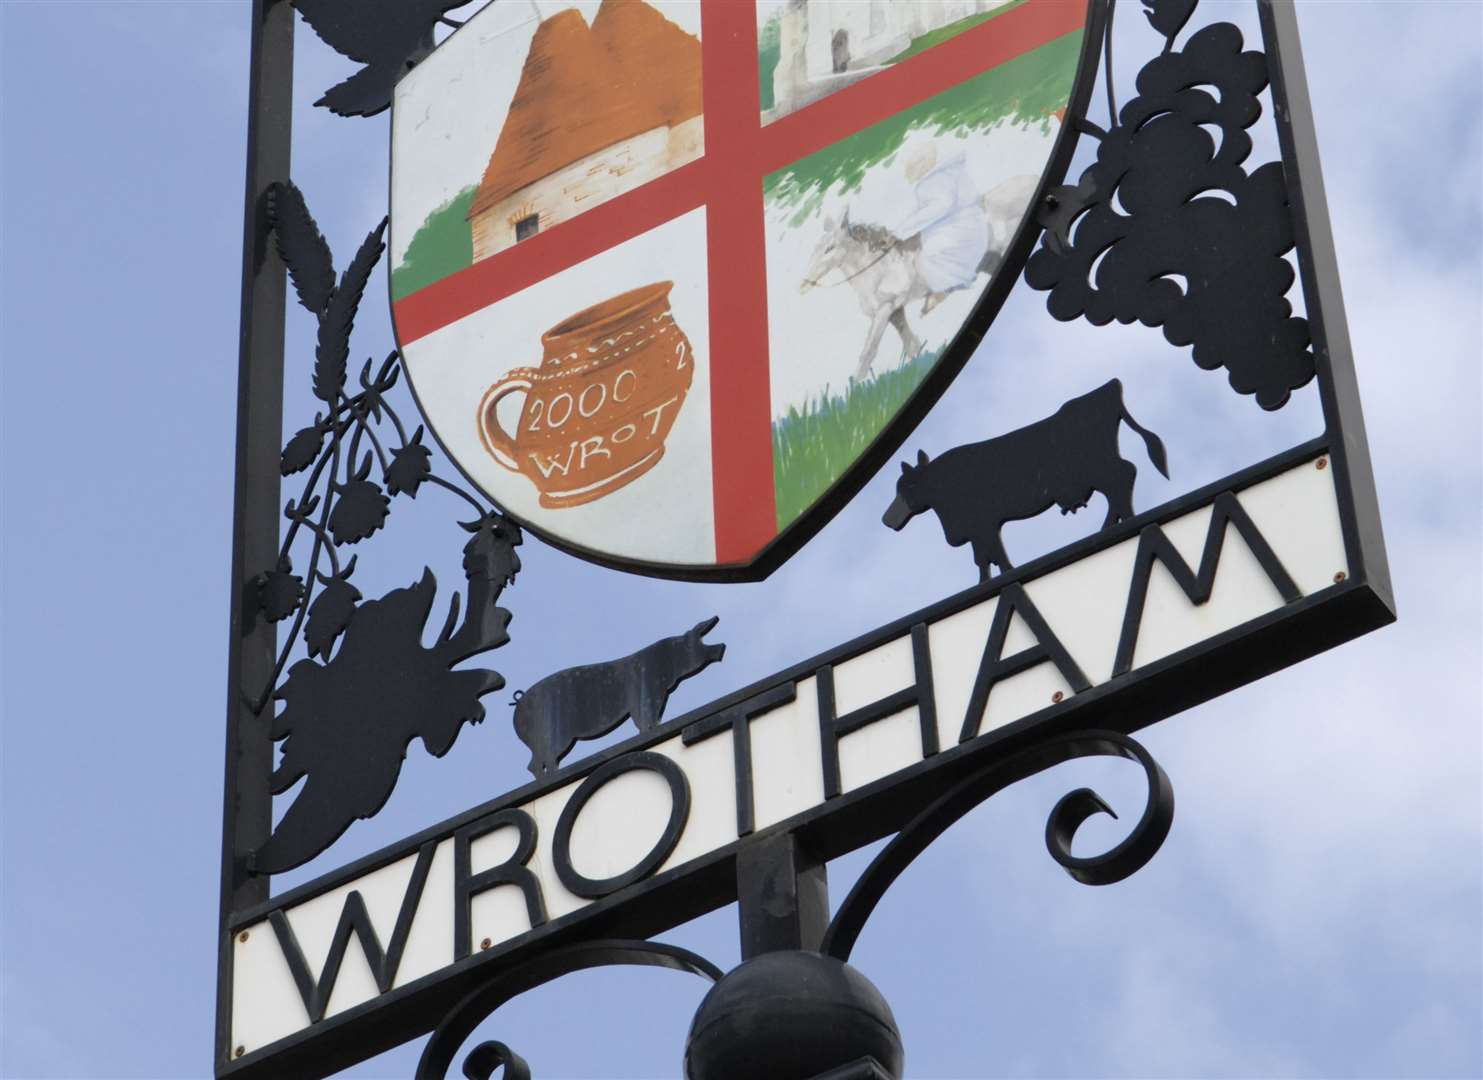 Wrotham saw thousands at one rave in the summer of 1989